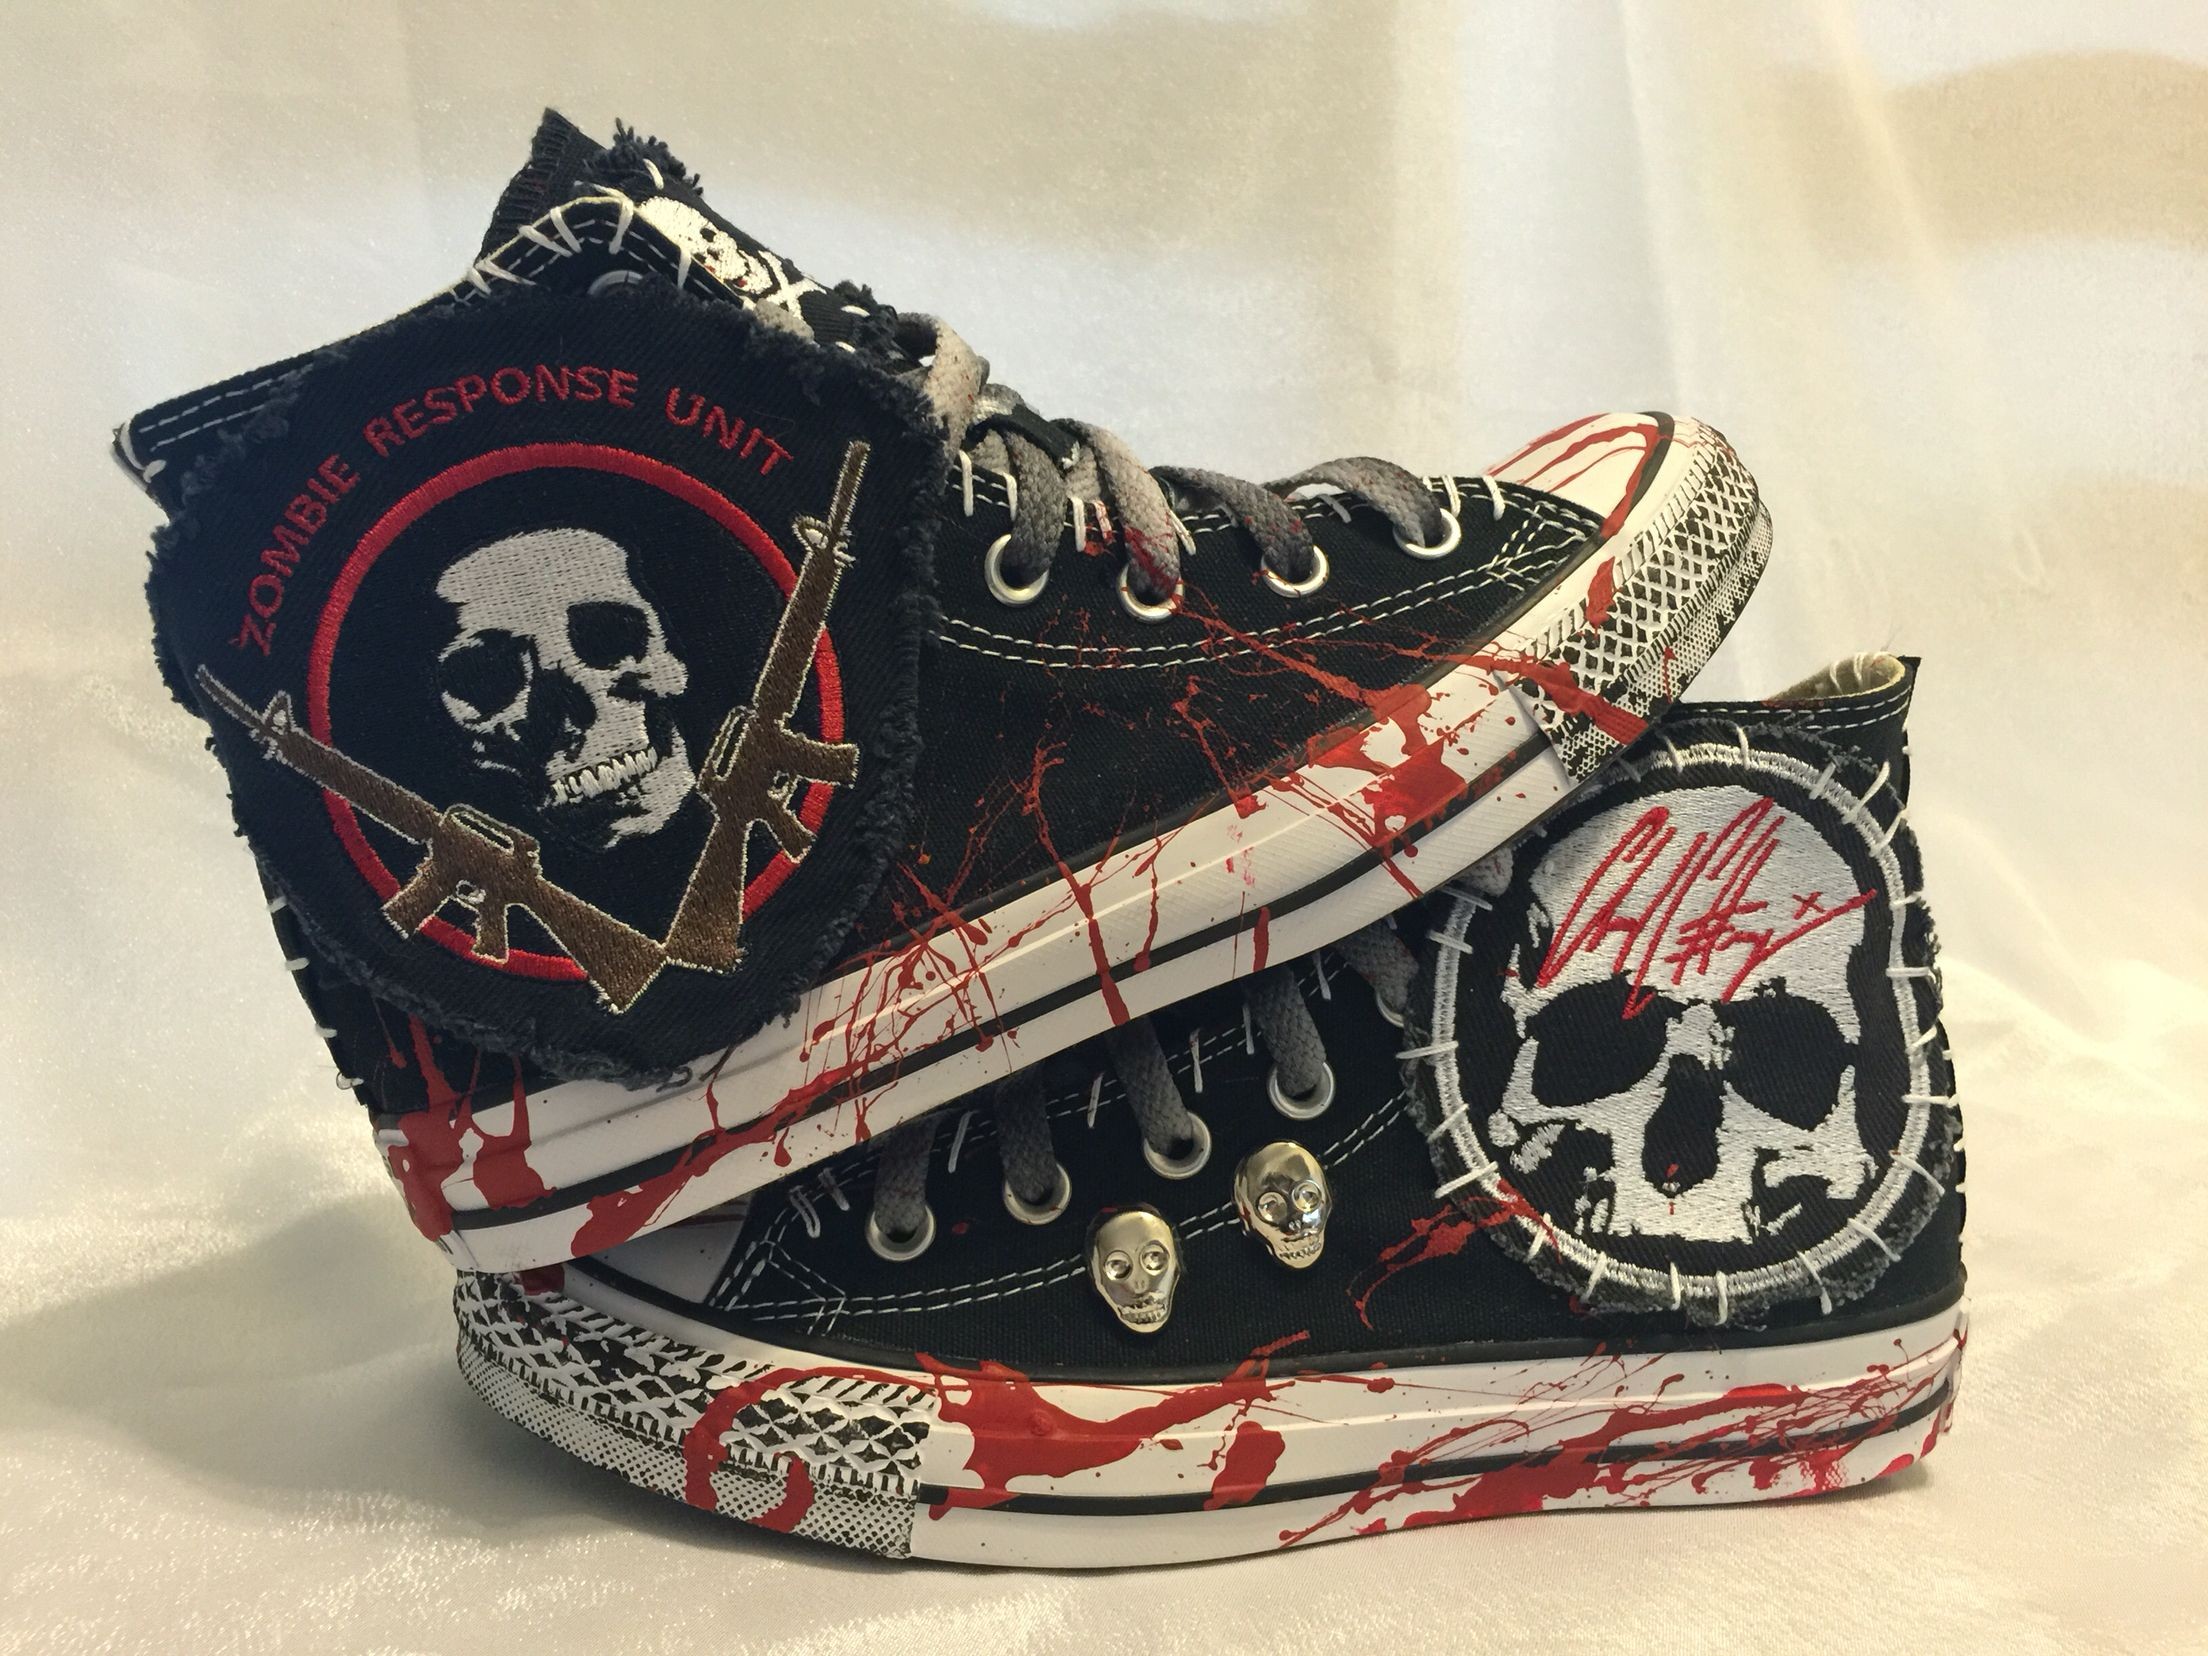 zombie all star converse shoes from chadcherryclothing chad zombie all star converse shoes from chadcherryclothing